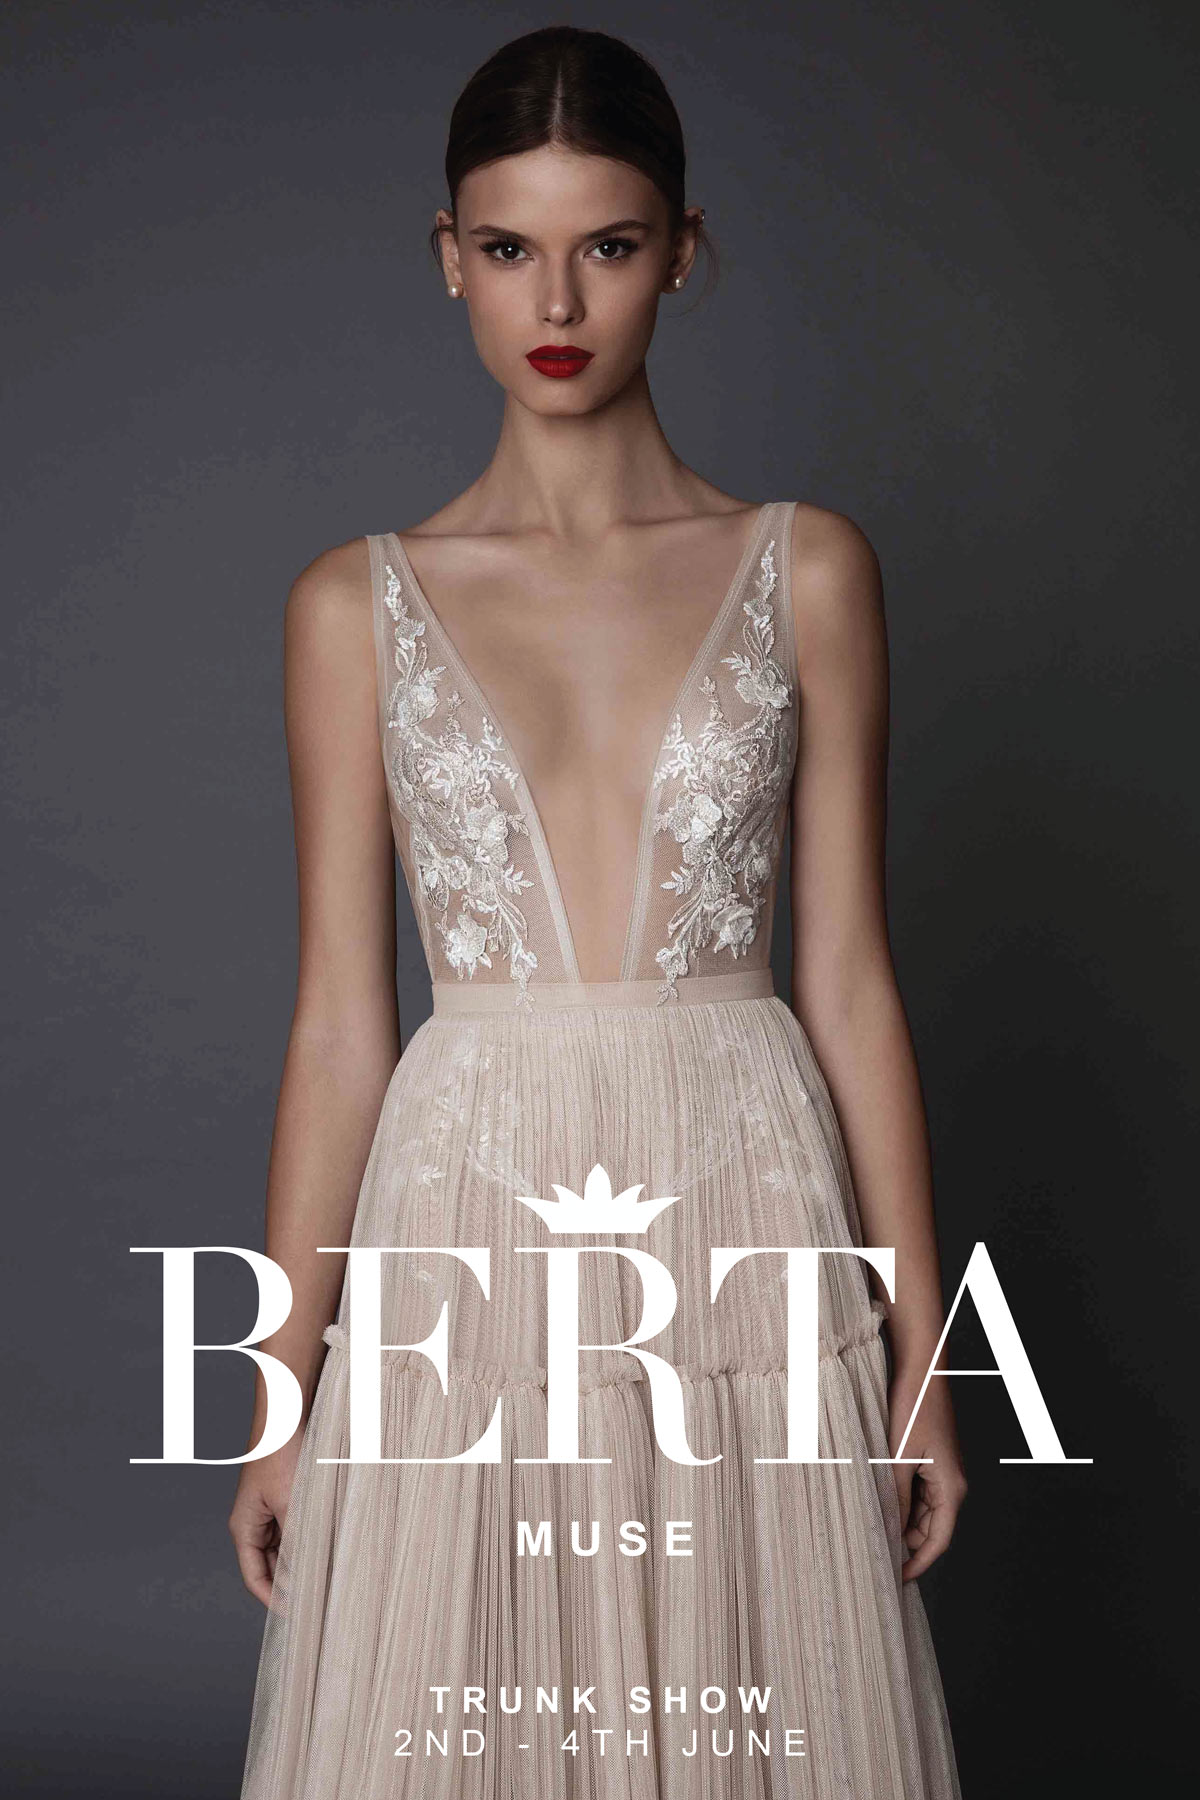 berta muse 2017 trunk show